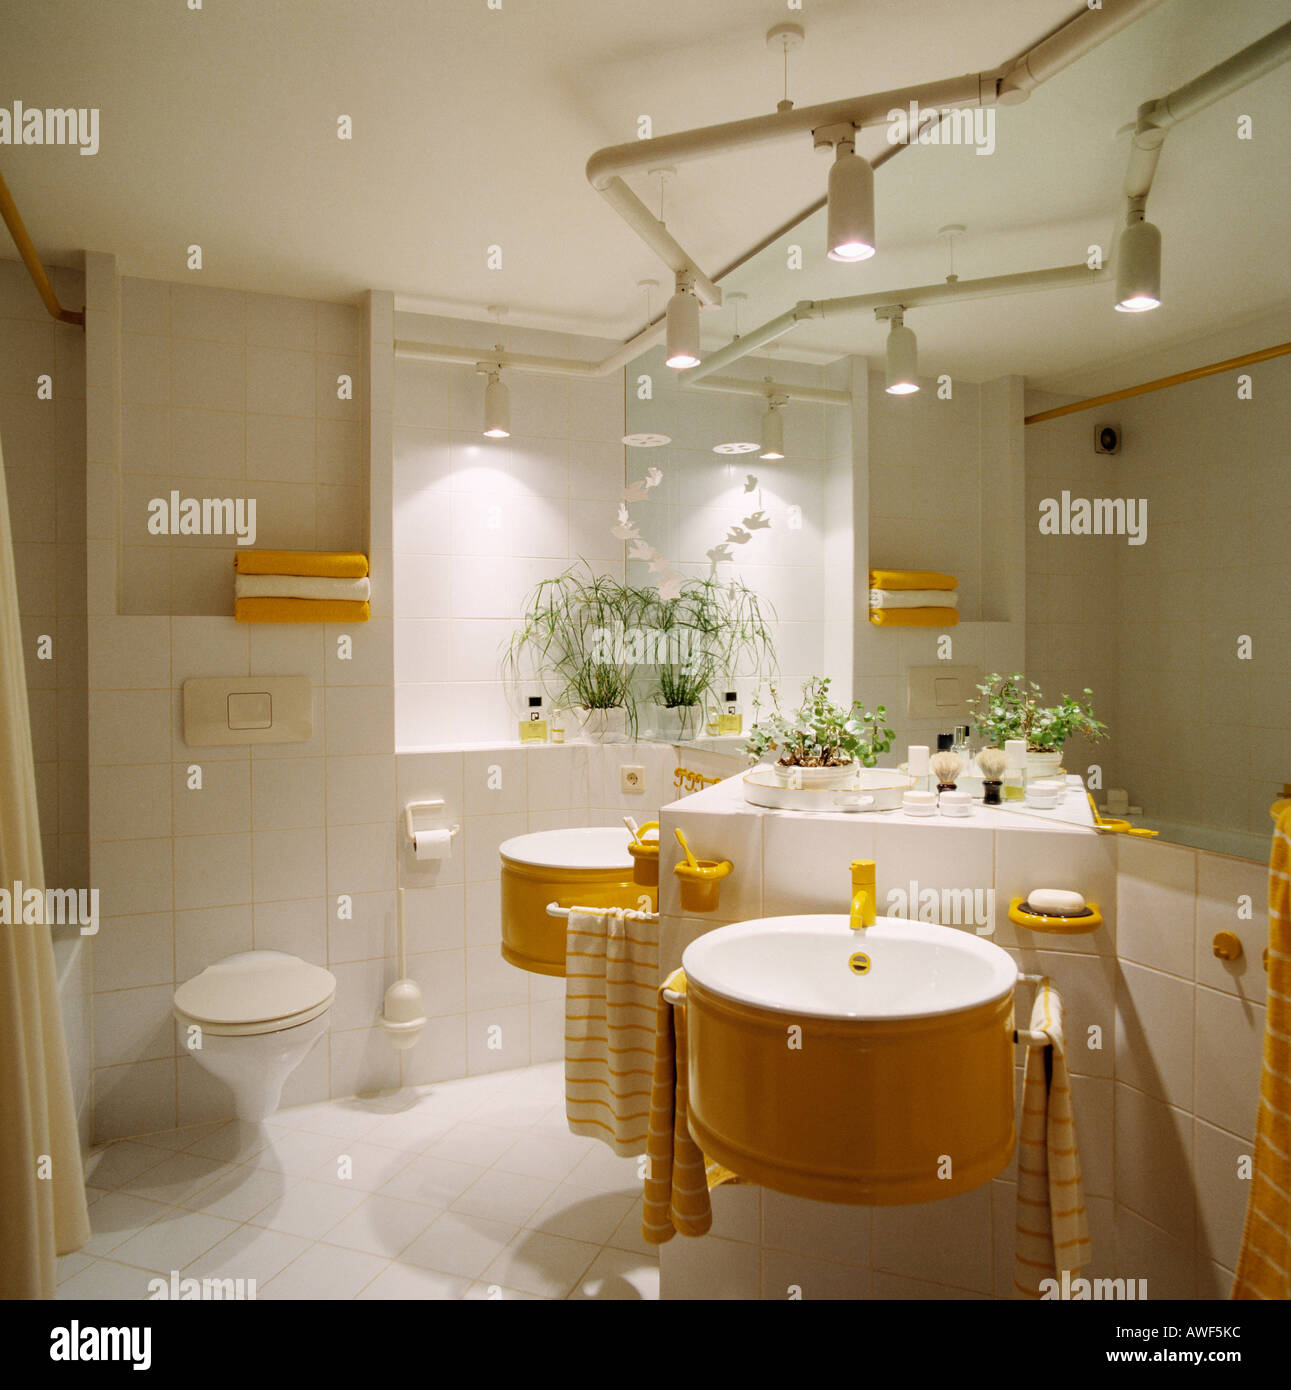 Stock Photo   Track Lighting Above Circular Basins On Fitted Vanity Unit In  Modern White Bathroom